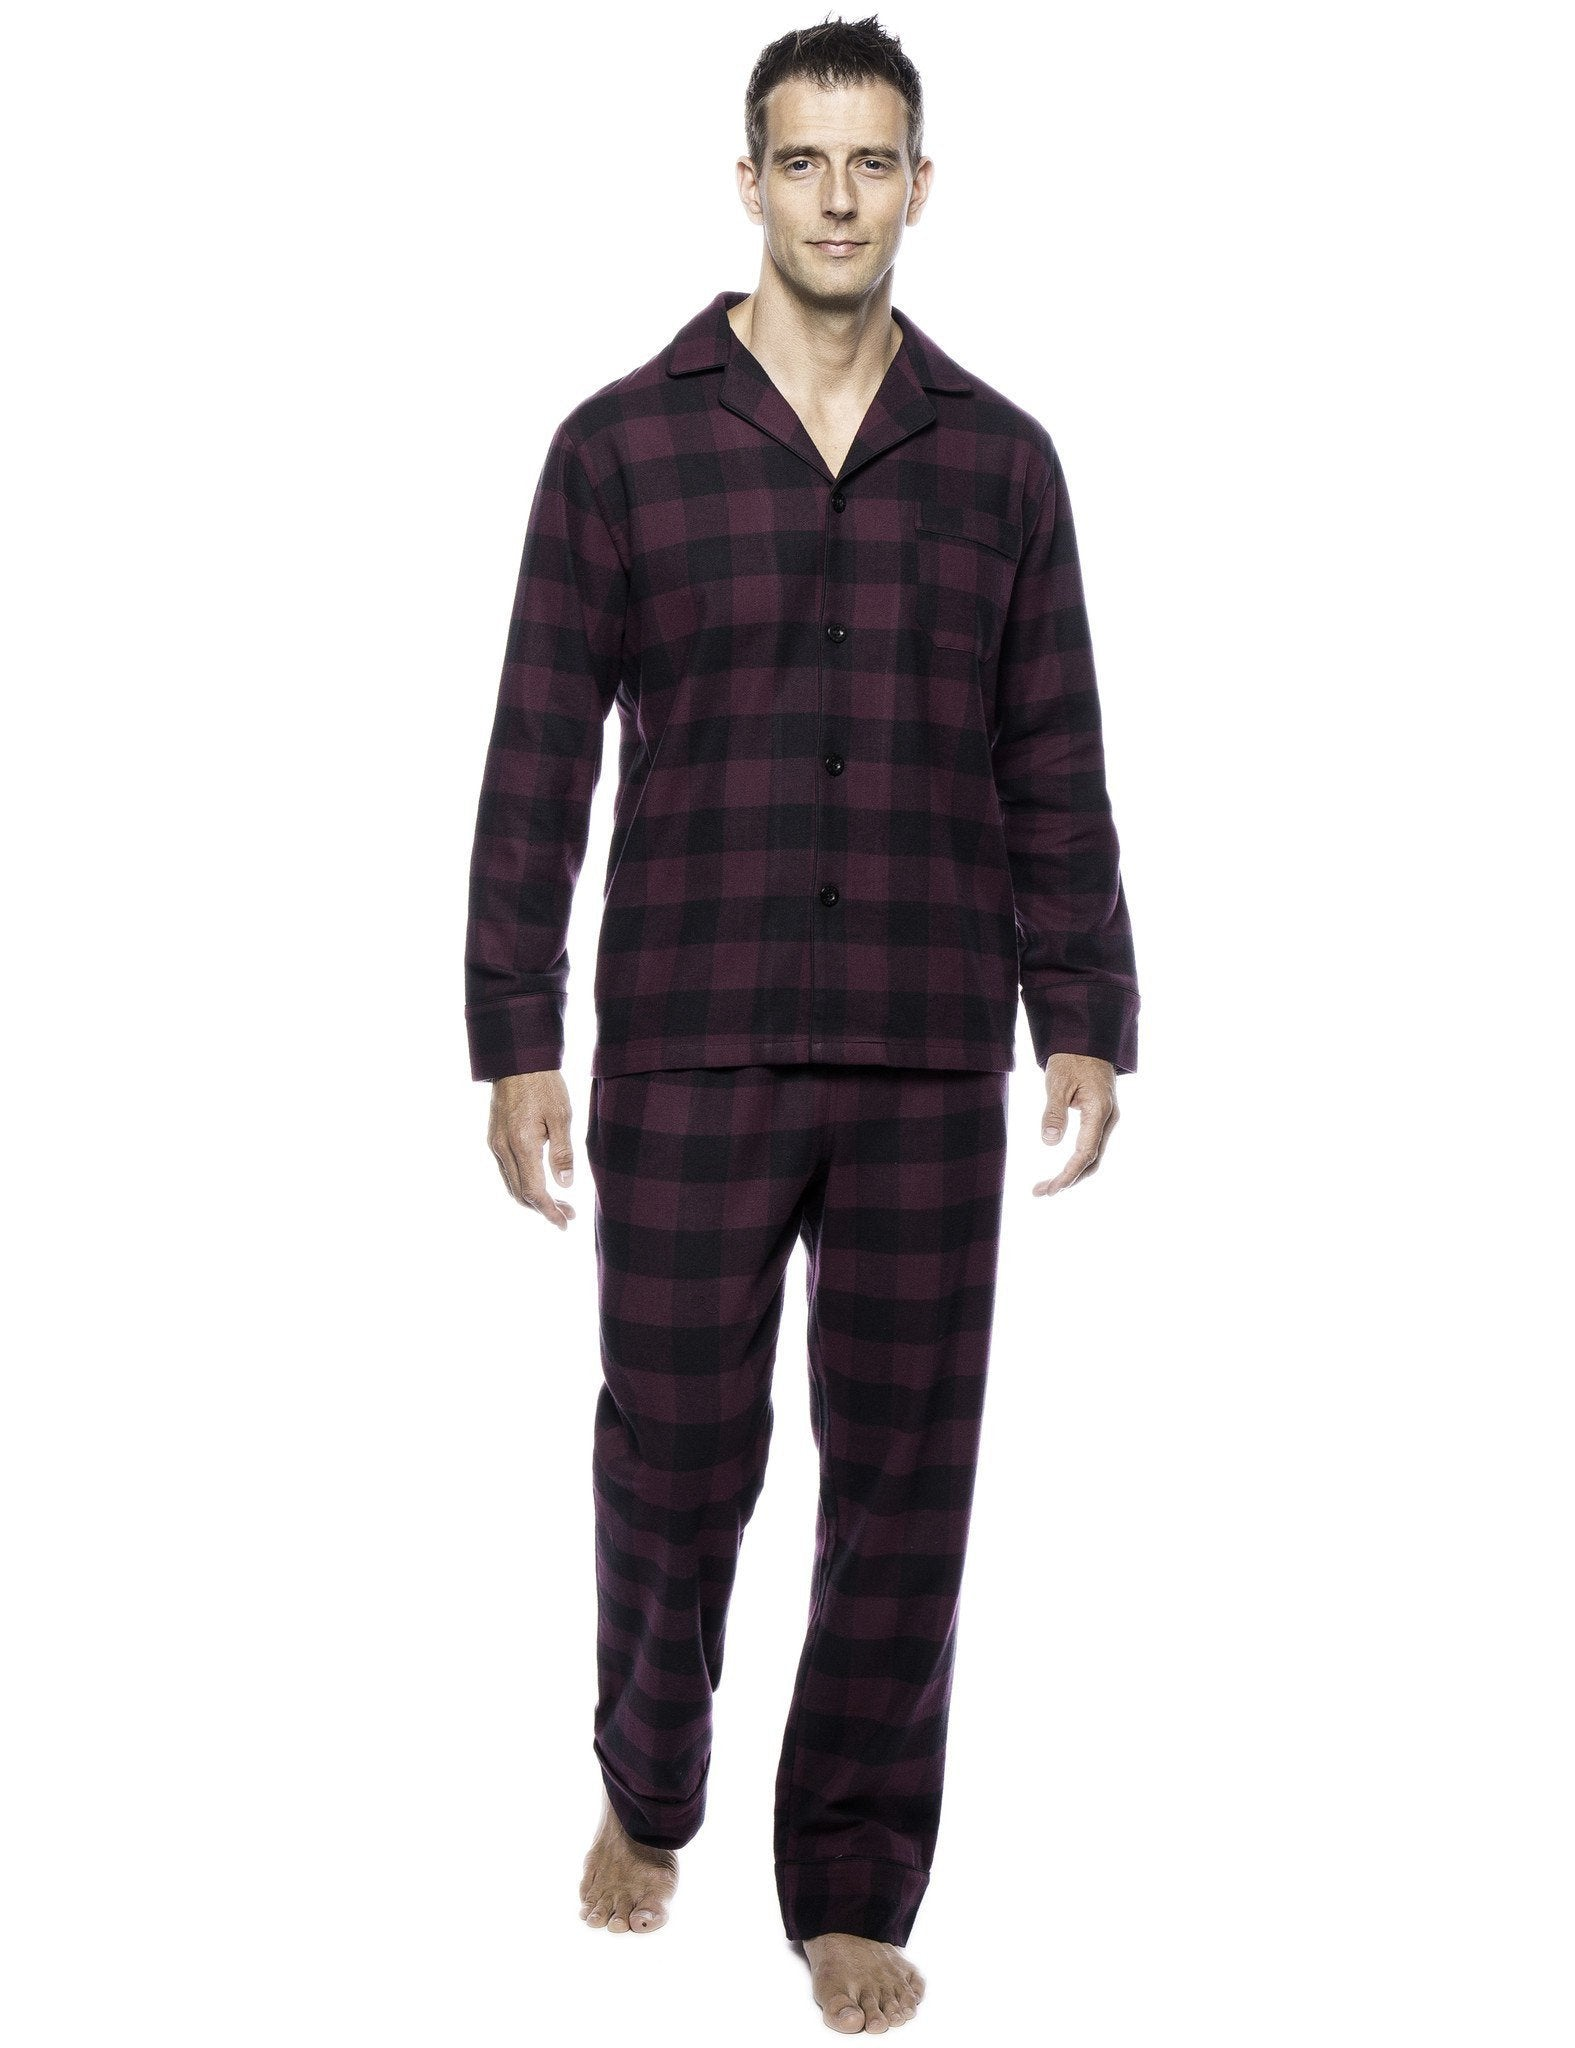 Box Packaged Men's Premium 100% Cotton Flannel Pajama Sleepwear Set - Gingham Fig/Black